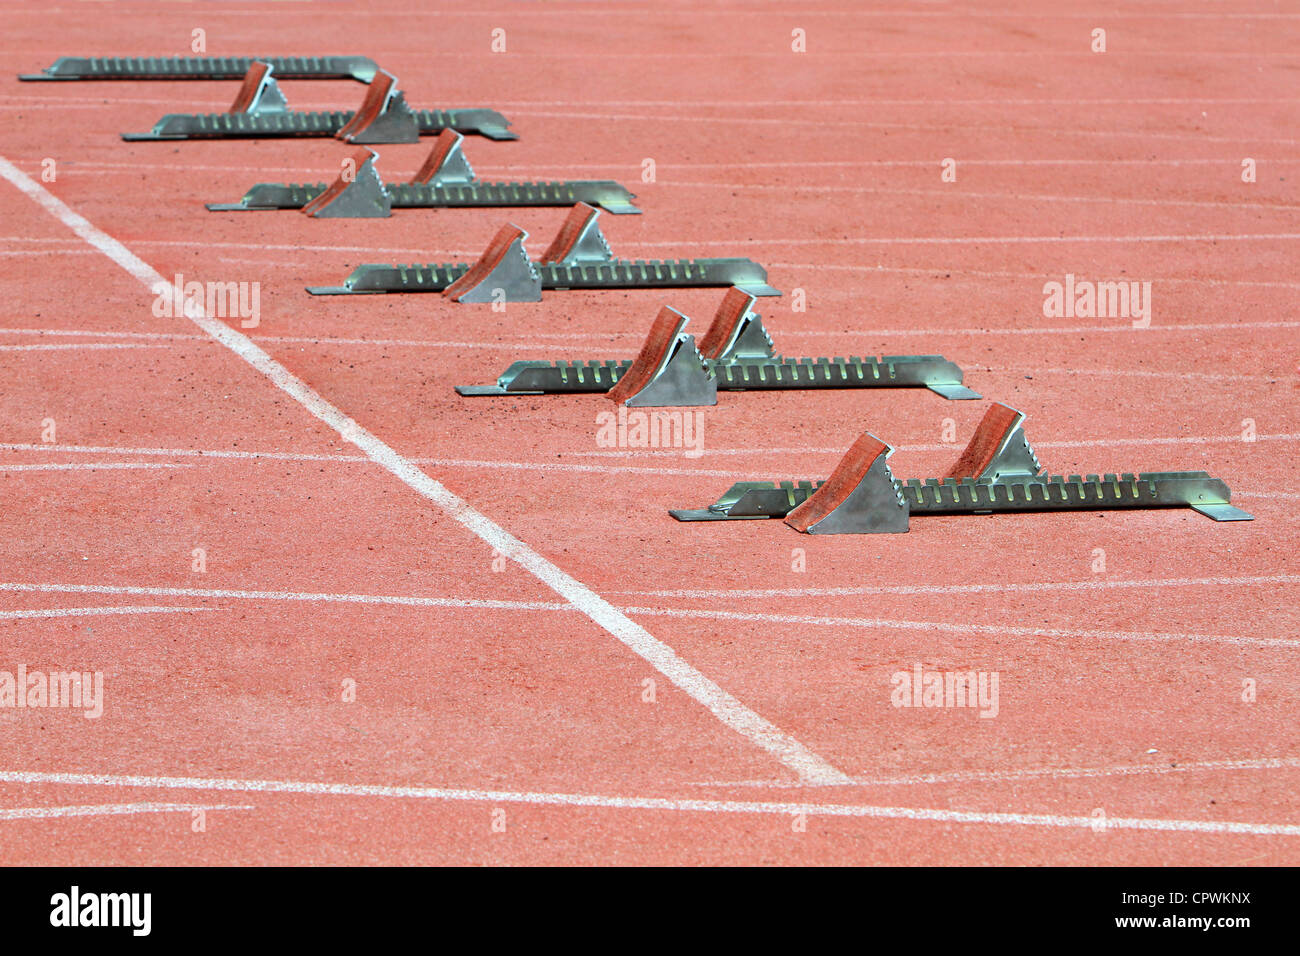 Athletics Starting Blocks on a red running track in the stadium. - Stock Image